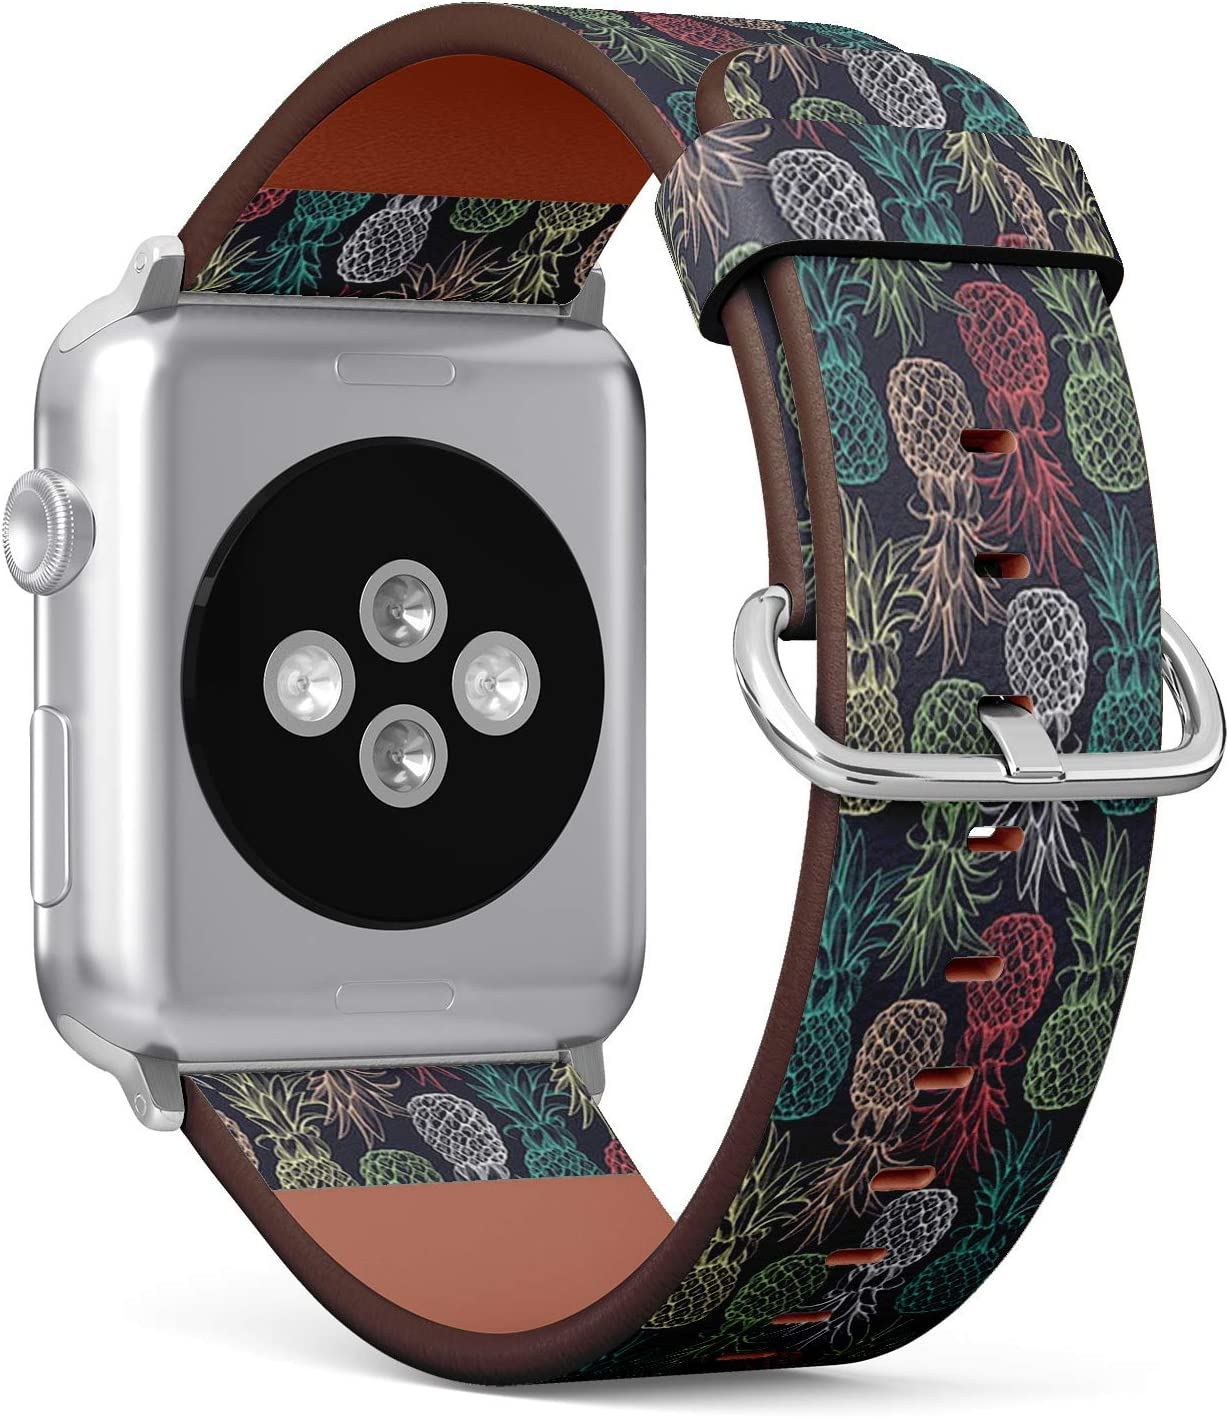 Compatible with Apple Watch Series 5, 4, 3, 2, 1 (Big Version 42/44 mm) Leather Wristband Bracelet Replacement Accessory Band + Adapters - Pineapples